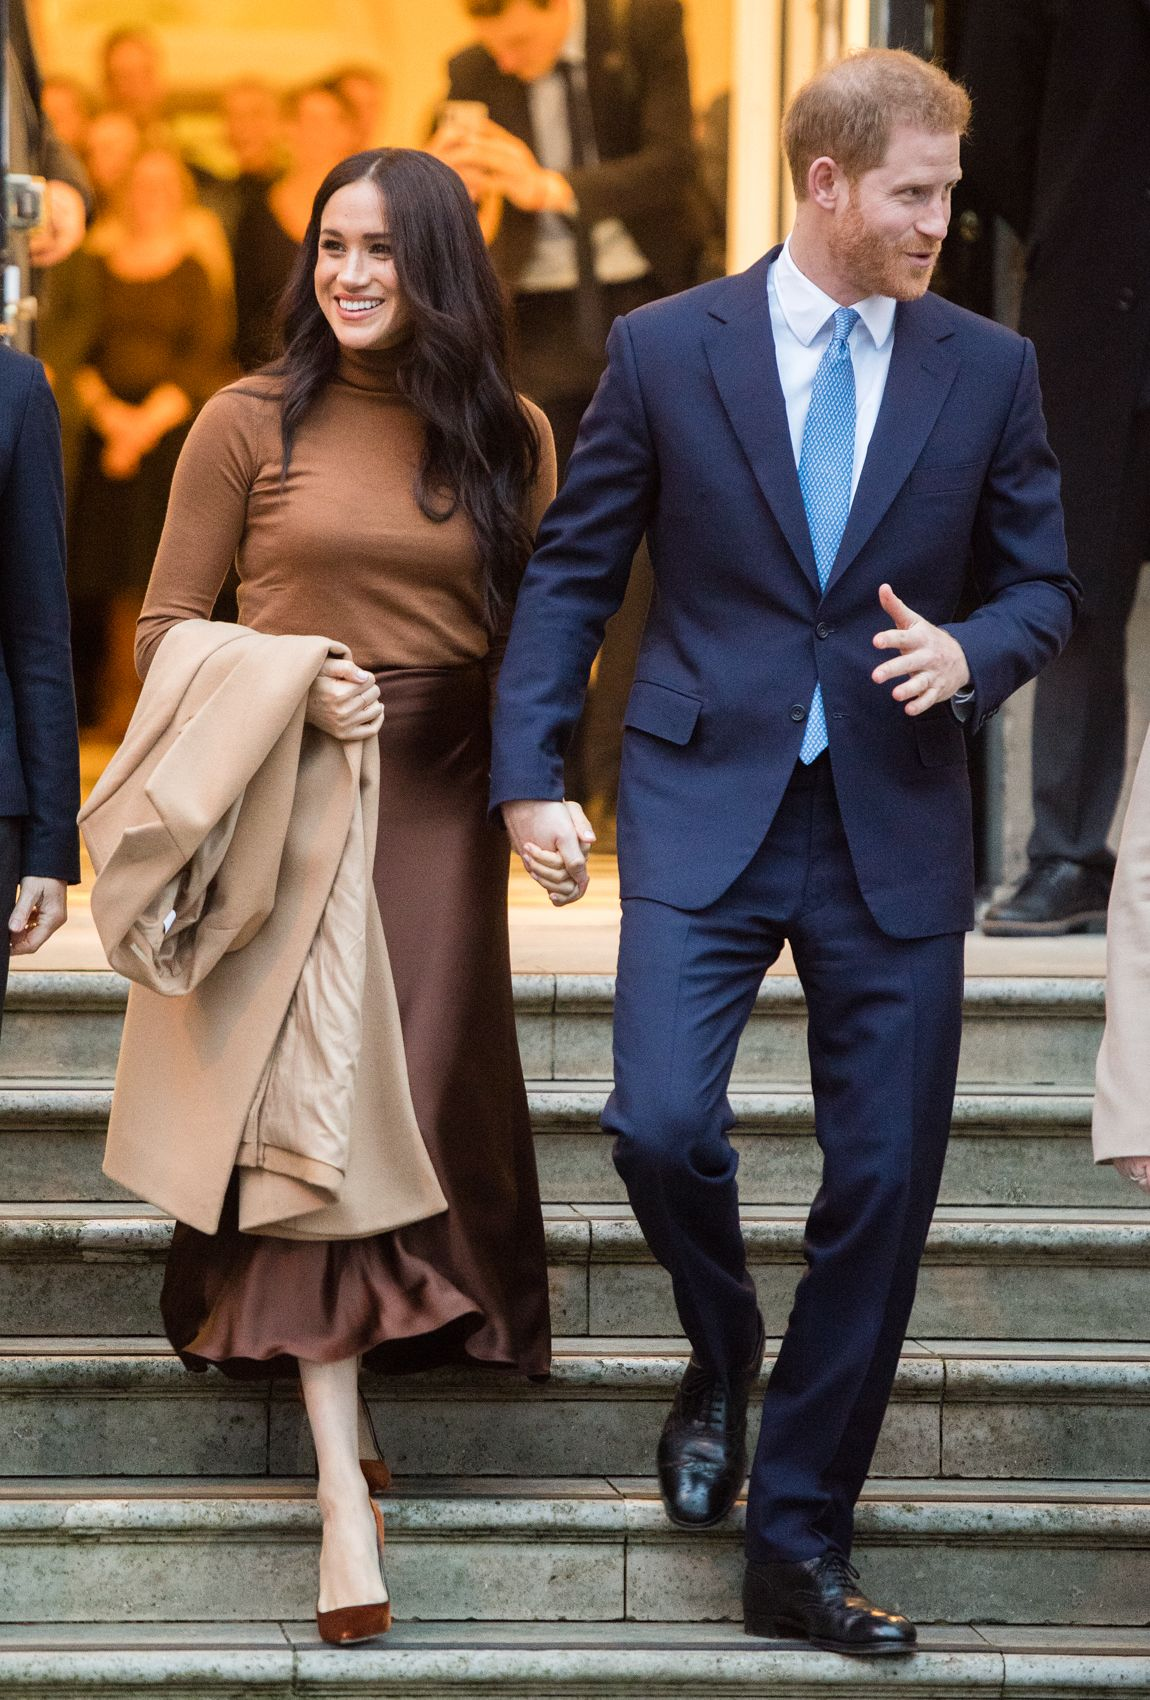 Meghan Markle and Prince Harry Are Stepping Down From Senior Royal Duties